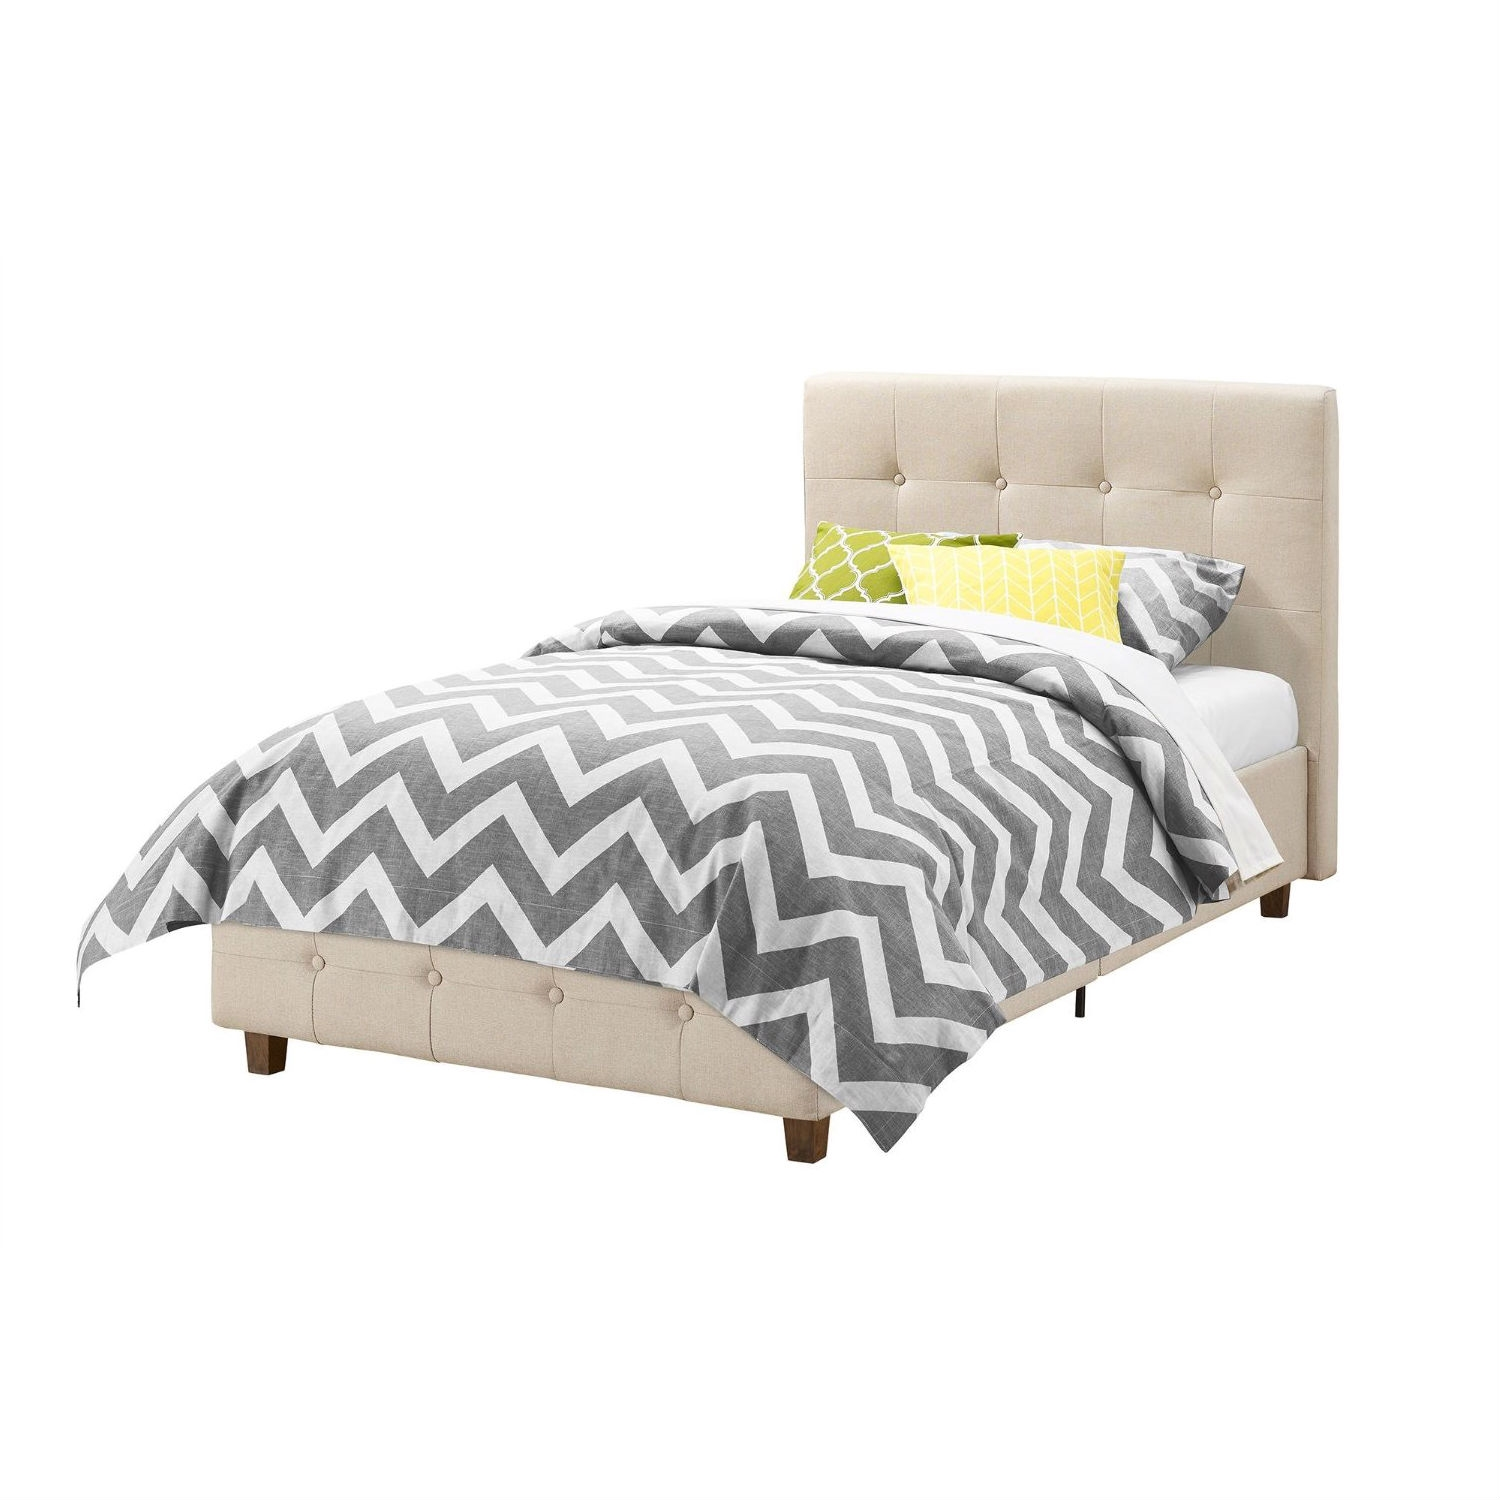 Twin Size Tan Linen Upholstered Platform Bed Frame With Button